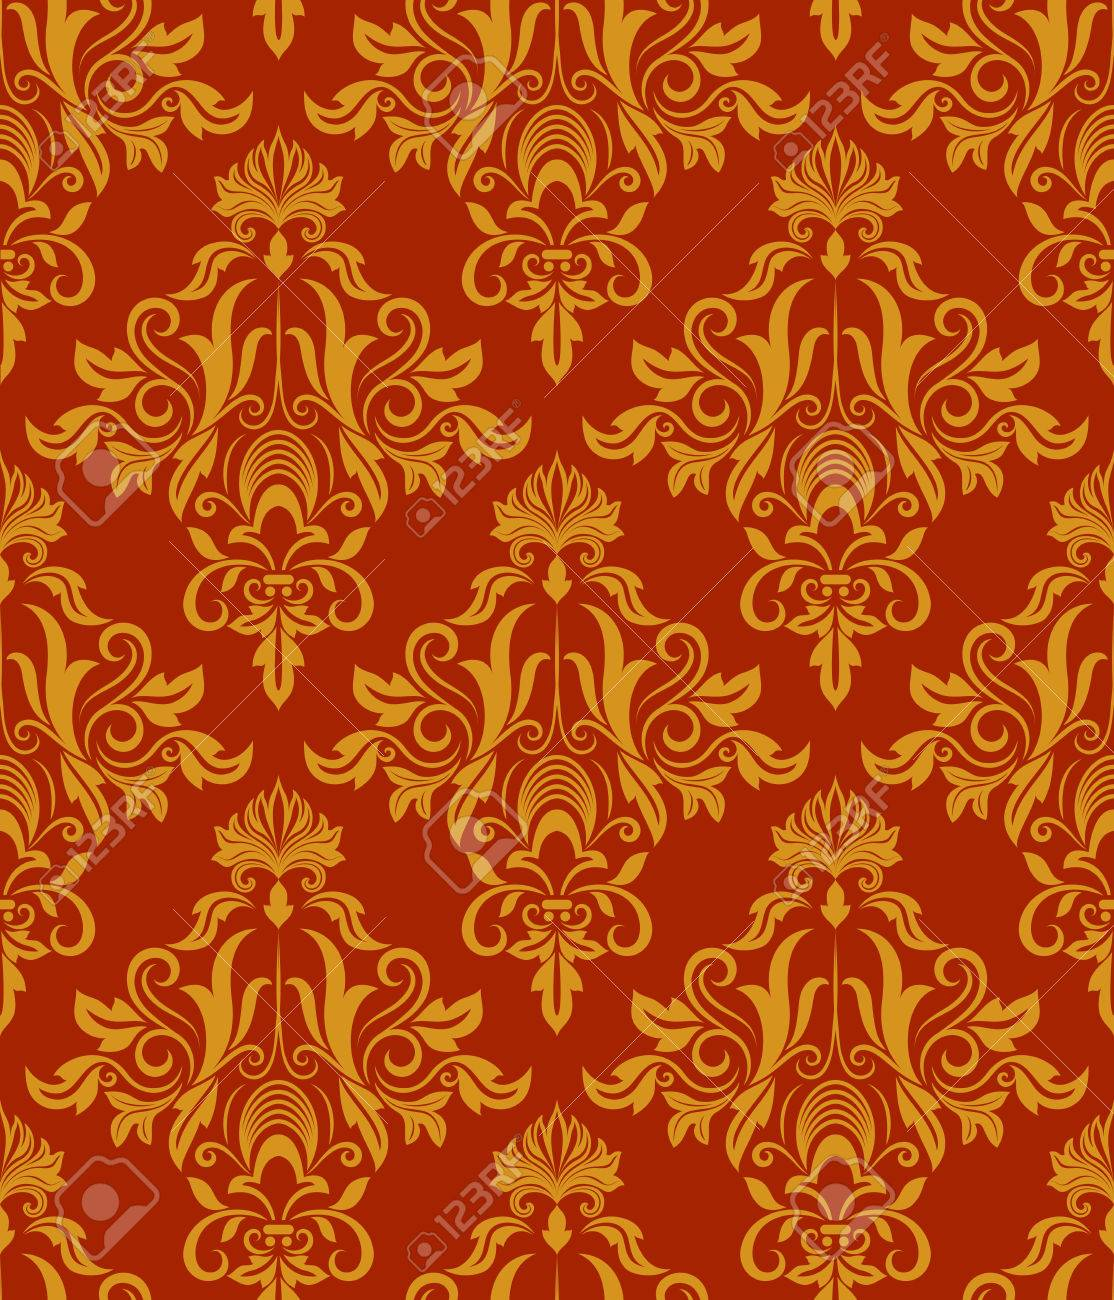 Seamless Red And Yellow Vintage Damask Wallpaper Vector Pattern Stock